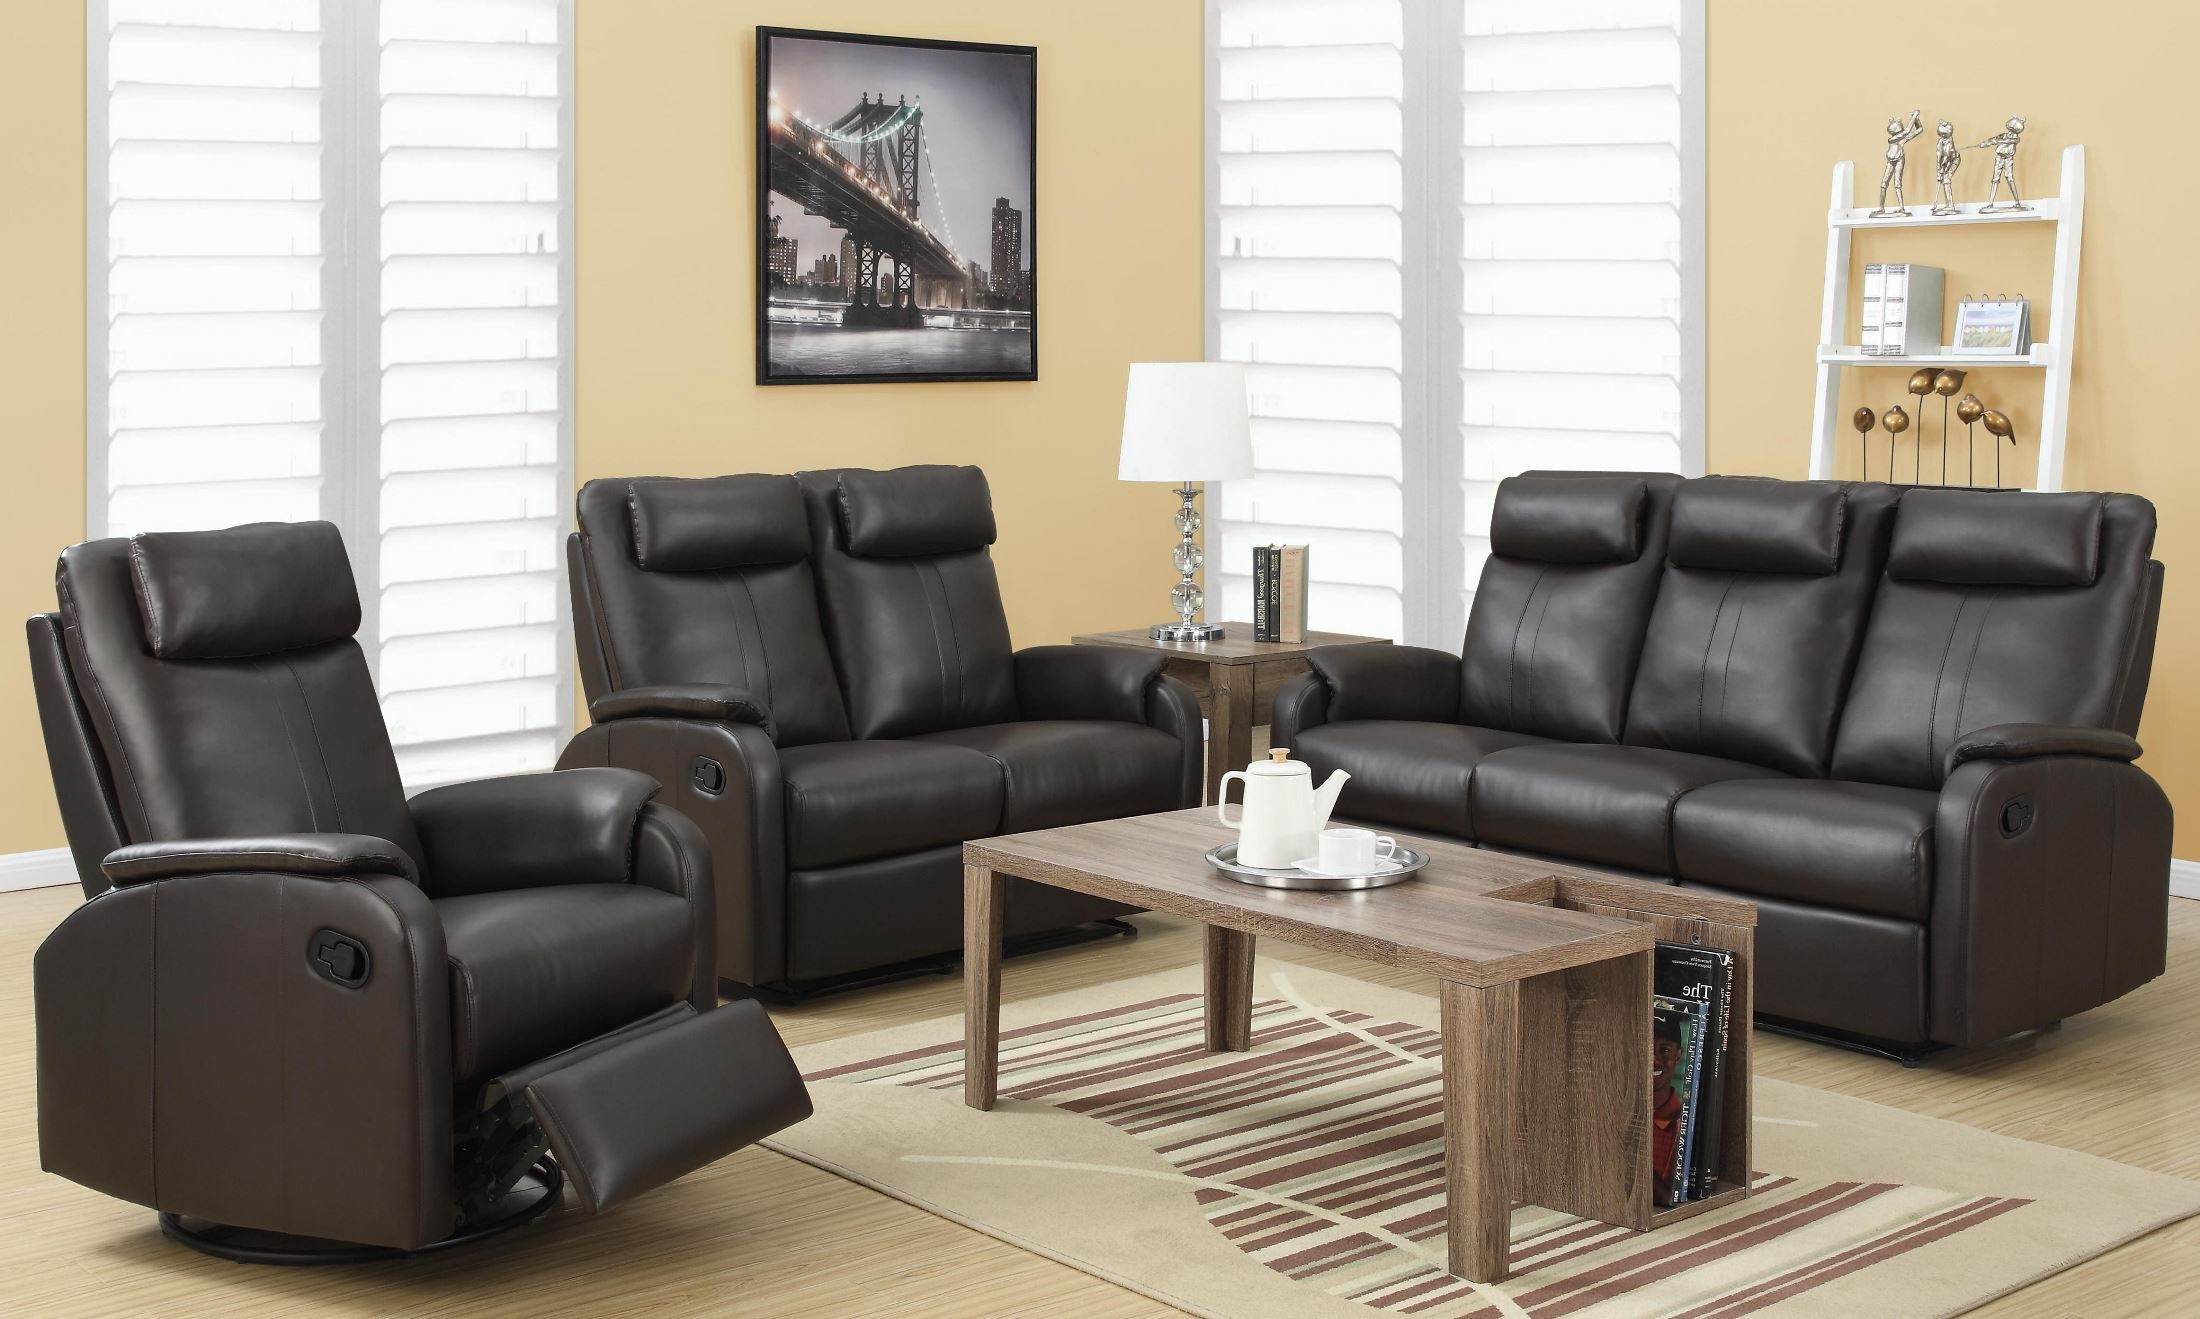 81br 3 brown bonded leather reclining living room set from monarch coleman furniture. Black Bedroom Furniture Sets. Home Design Ideas